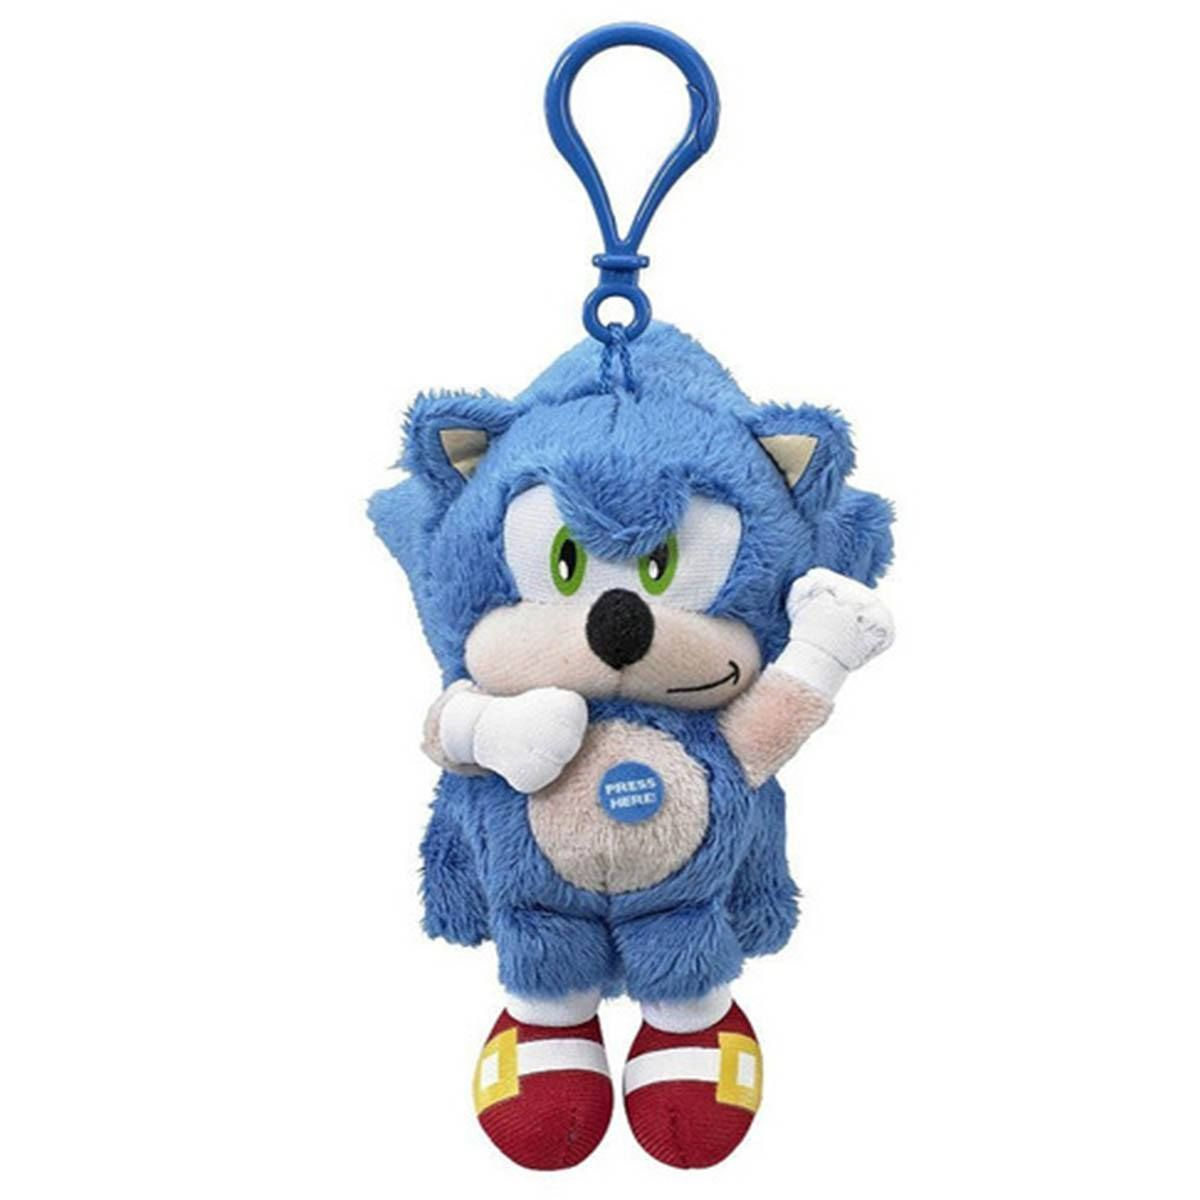 This Is A Sonic The Hedgehog Plush Clip On Figure Sonic The Hedgehog Is The Mascot Of Sega But He Also Represents An Ent Sonic Plush Toys Sonic Sonic Figures